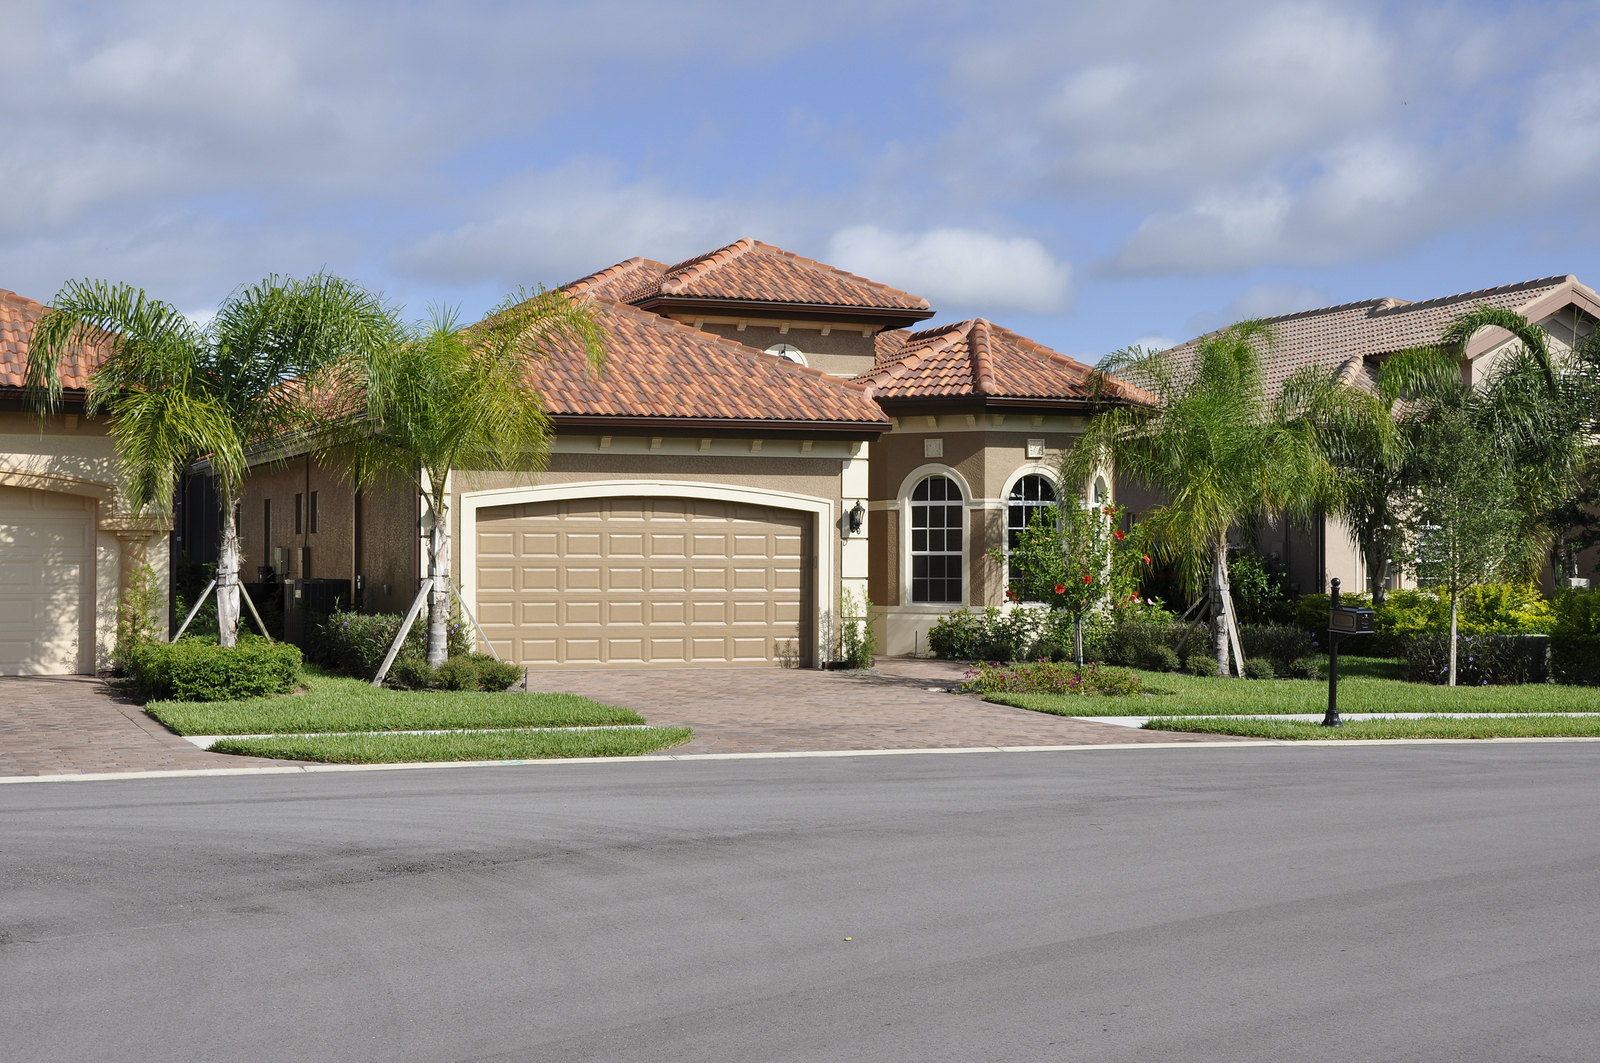 Typical Modern Home In Florida (Image 8 of 8)